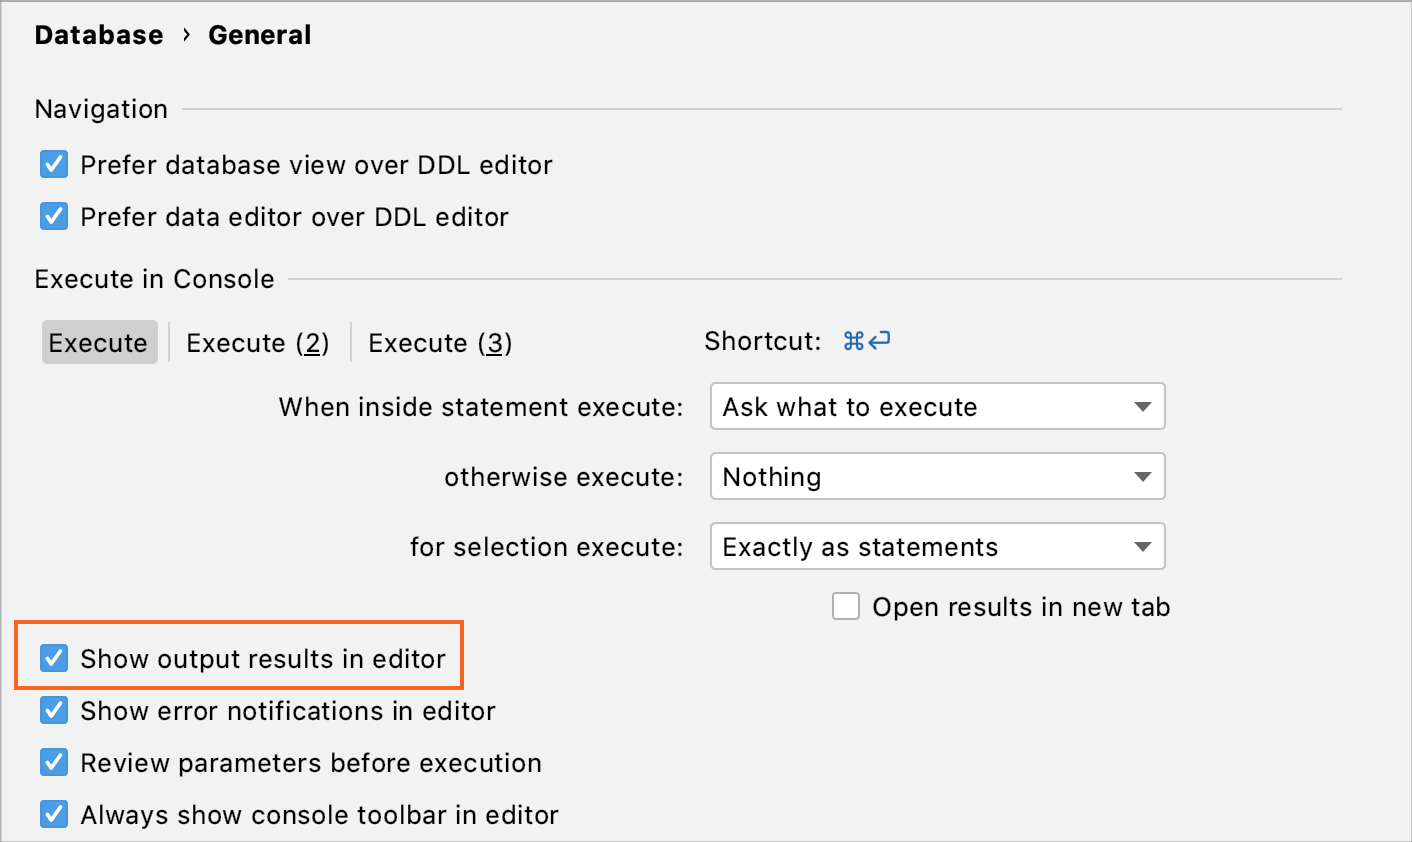 Disable in-editor results globally